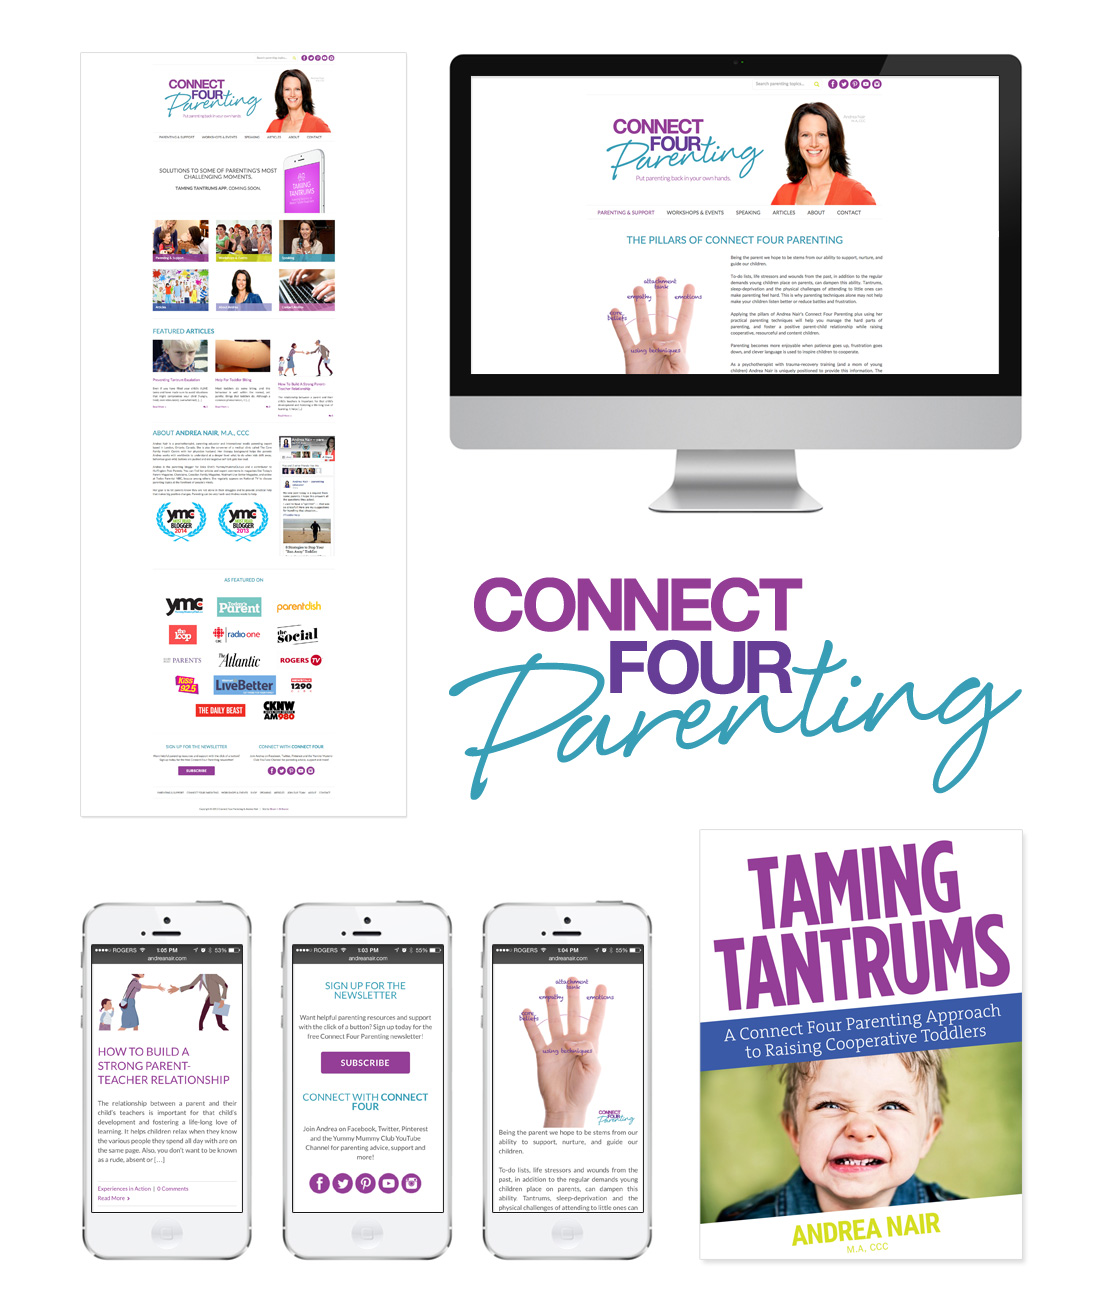 connect-four-parenting-website-design-branding-winnipeg-manitoba-responsive-mobile-optimized-board